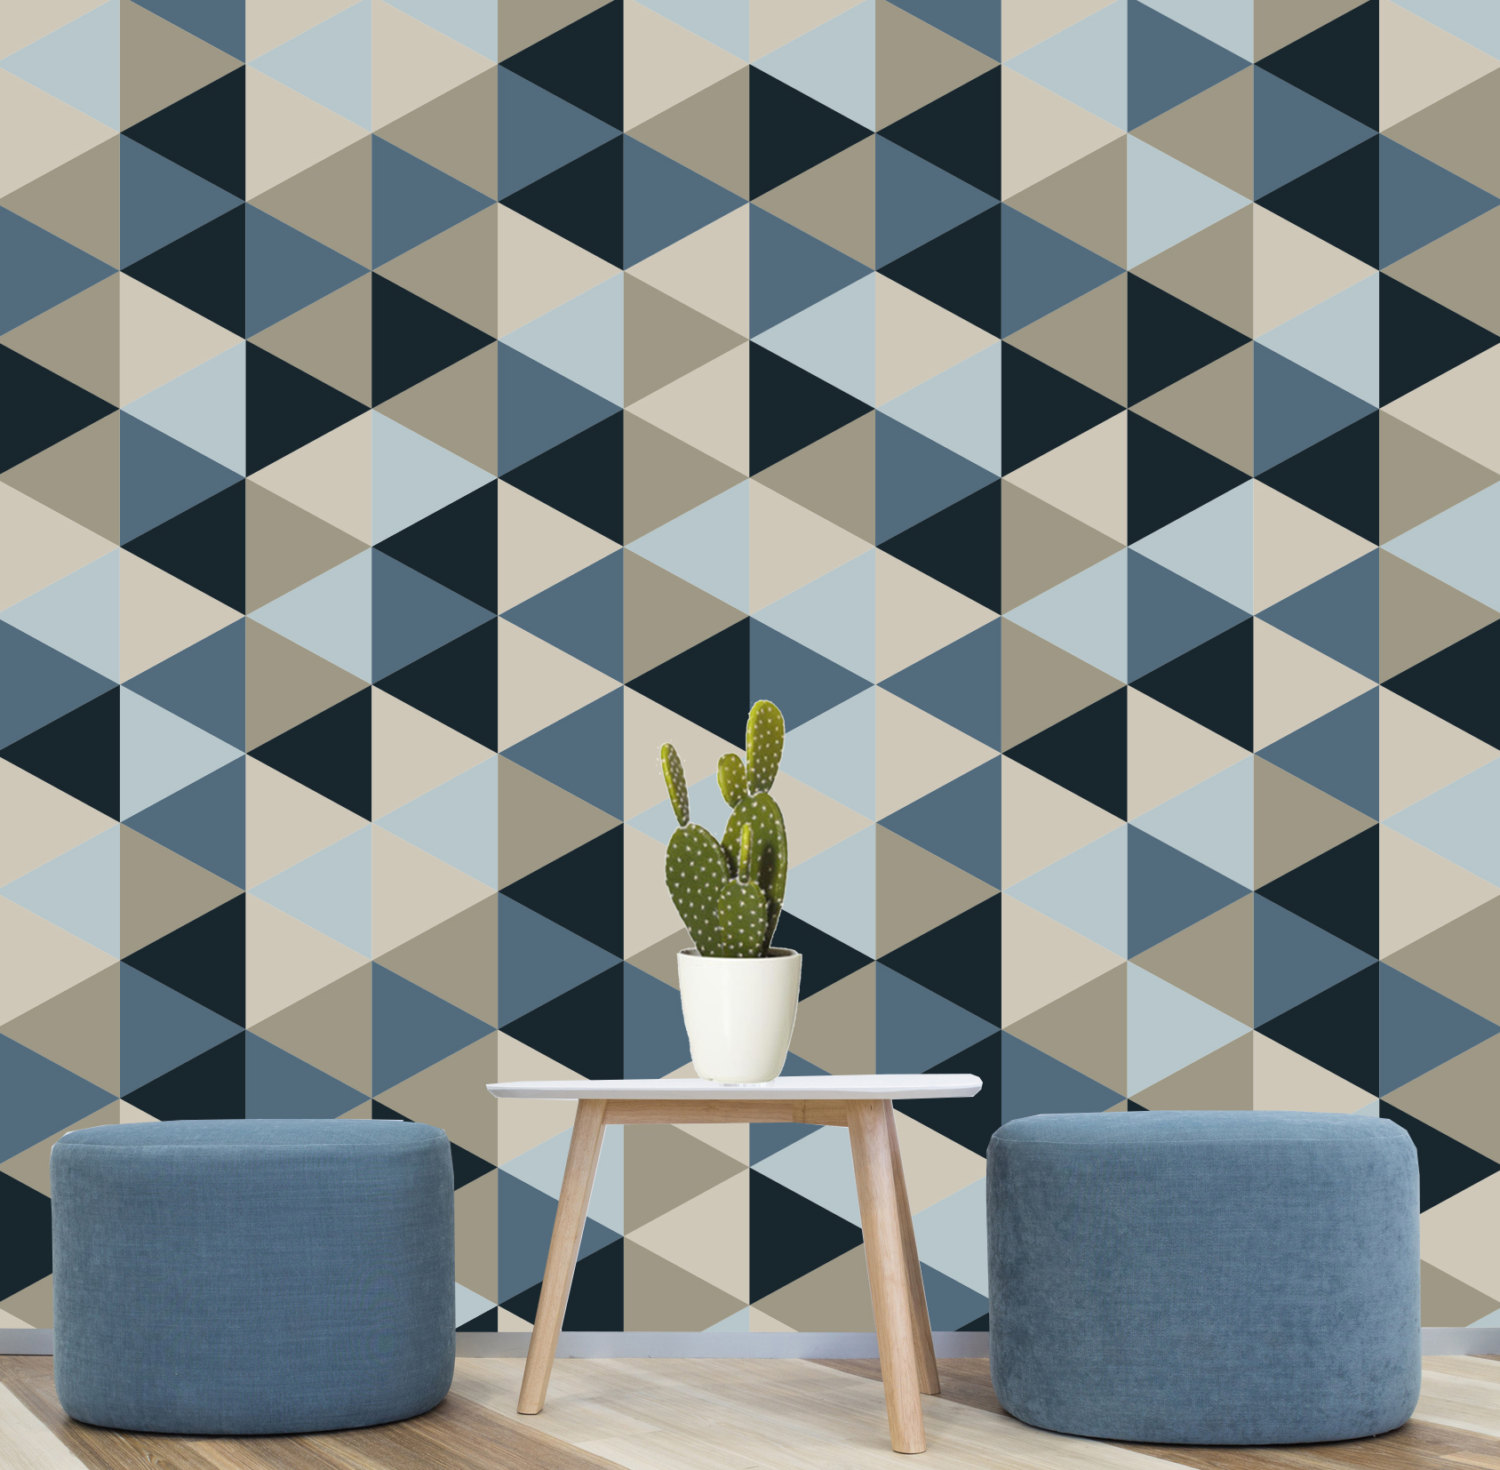 Geometric Removable Wallpaper Blue Navy Creams Self by Nicematches 1500x1470